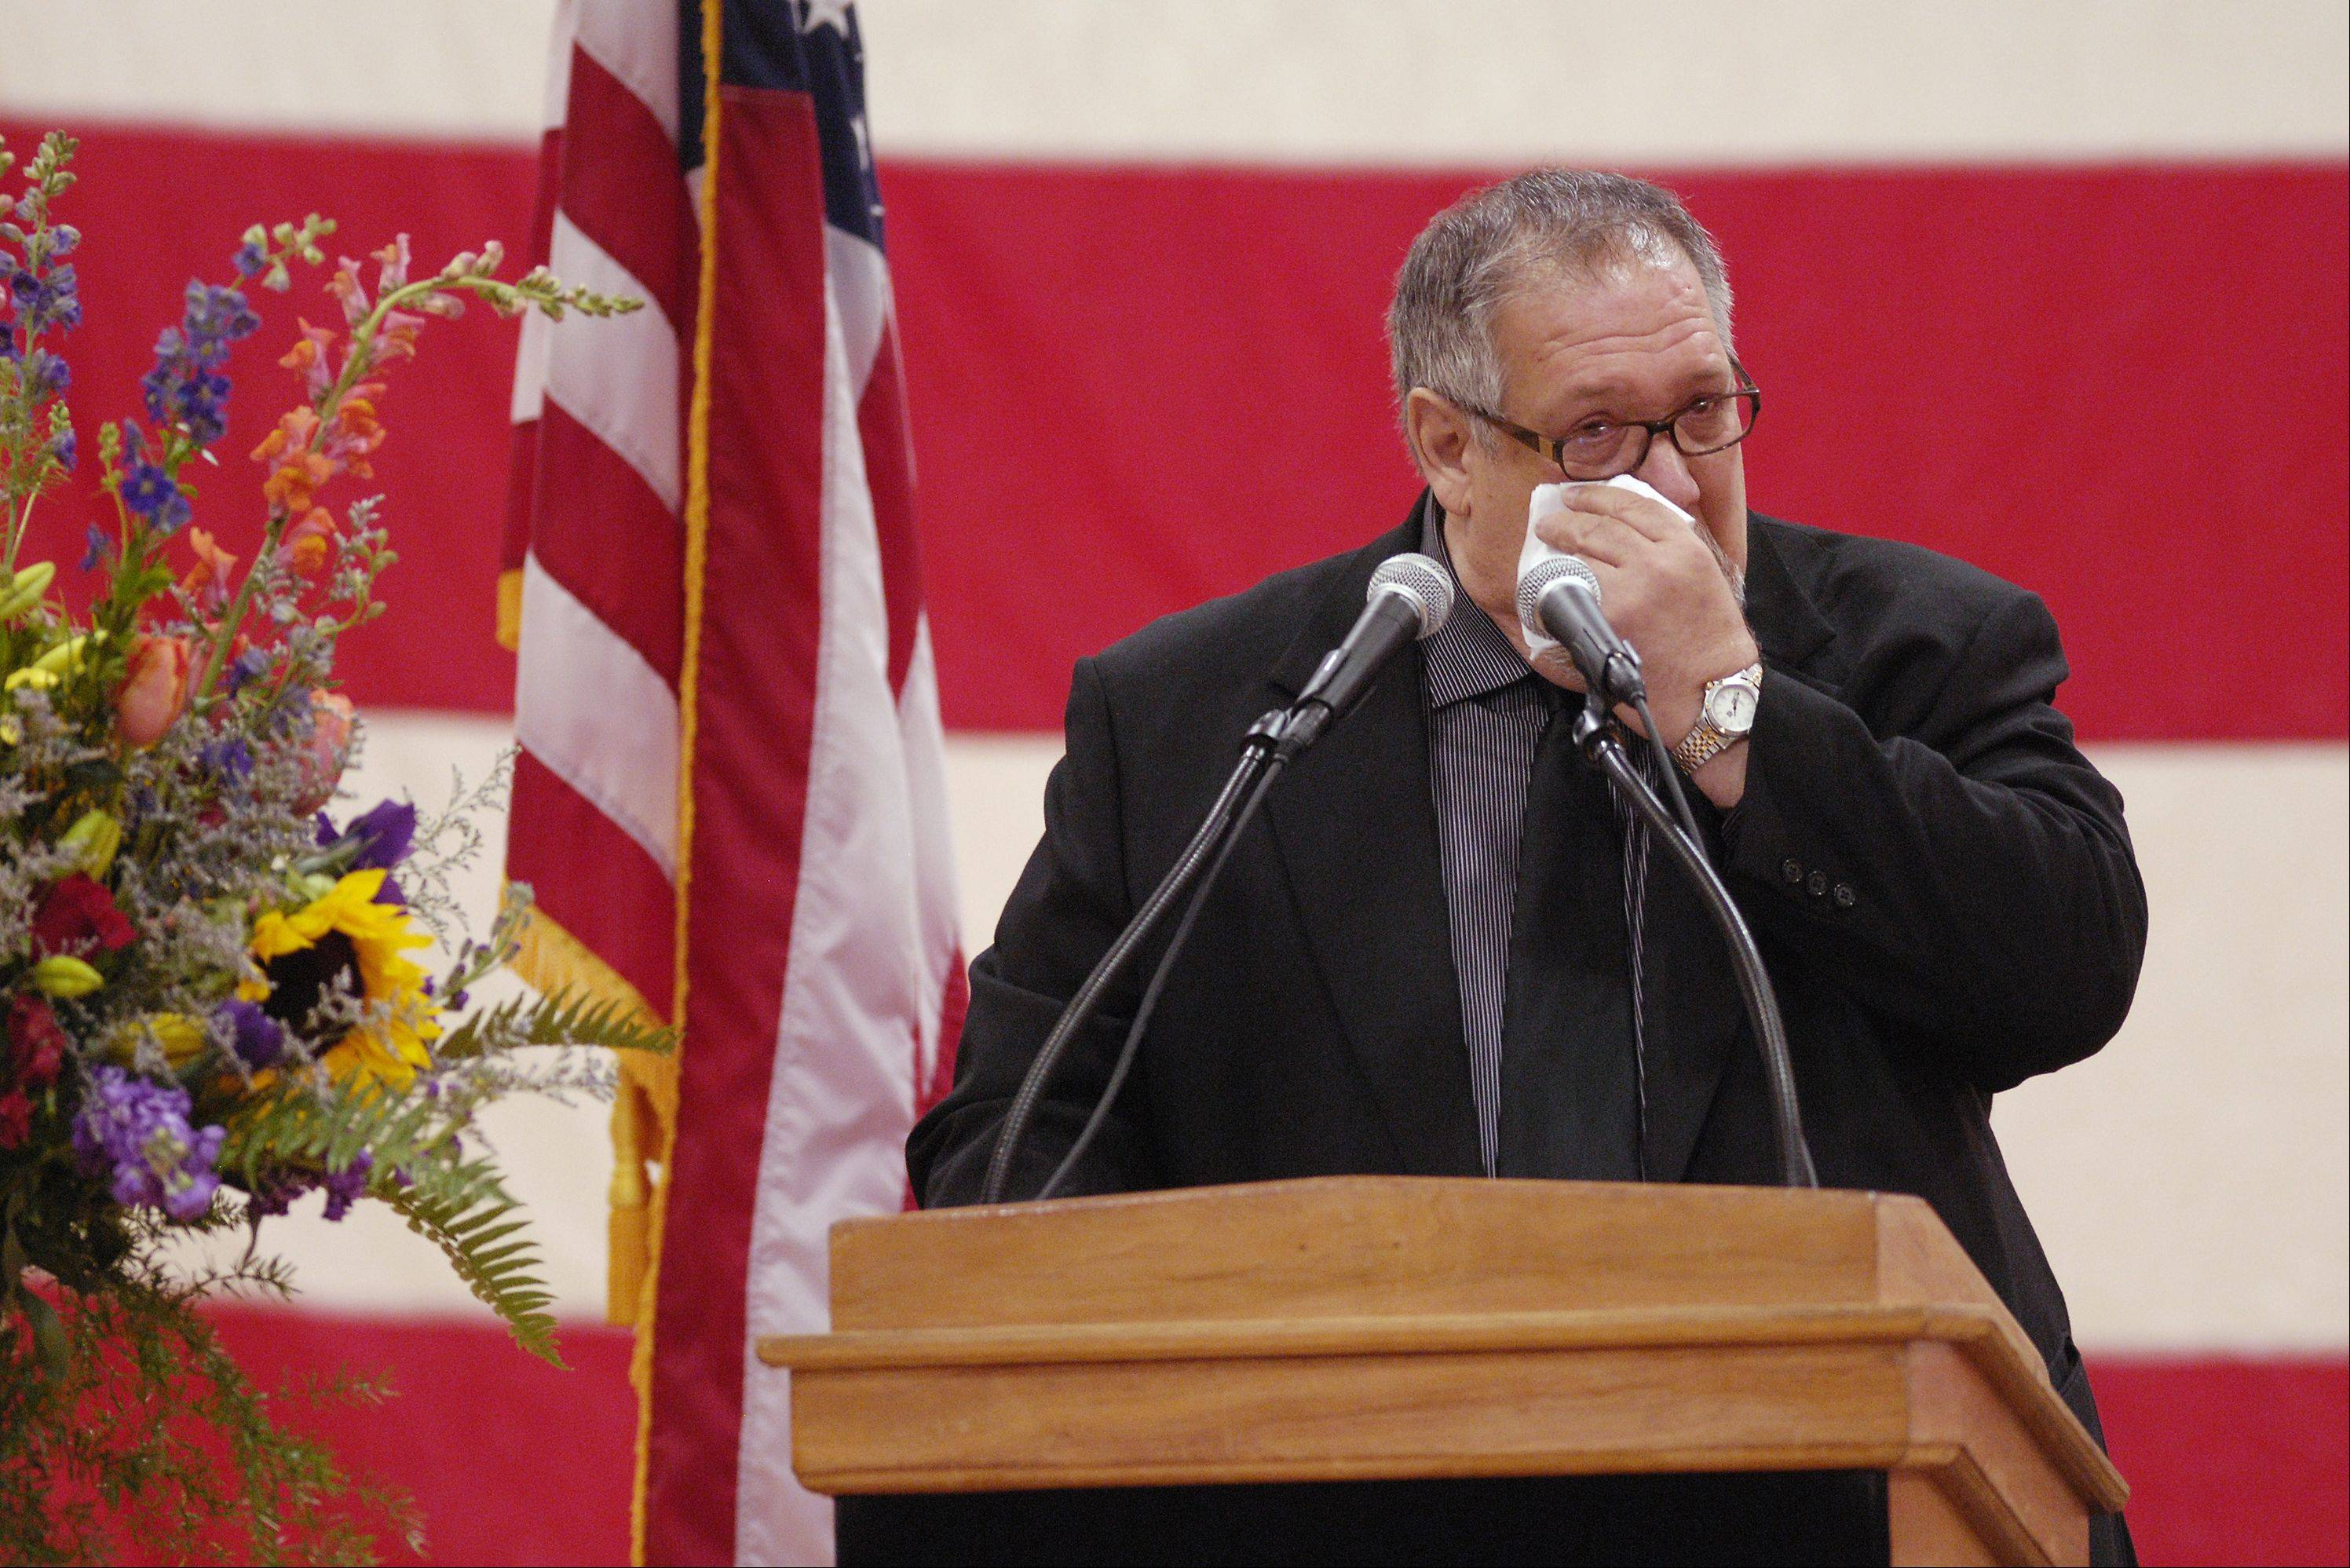 Steve Kwasman wipes a tear from his eye Sunday as he speaks during the memorial service for brother, West Chicago Mayor Mike Kwasman, at West Chicago High School.